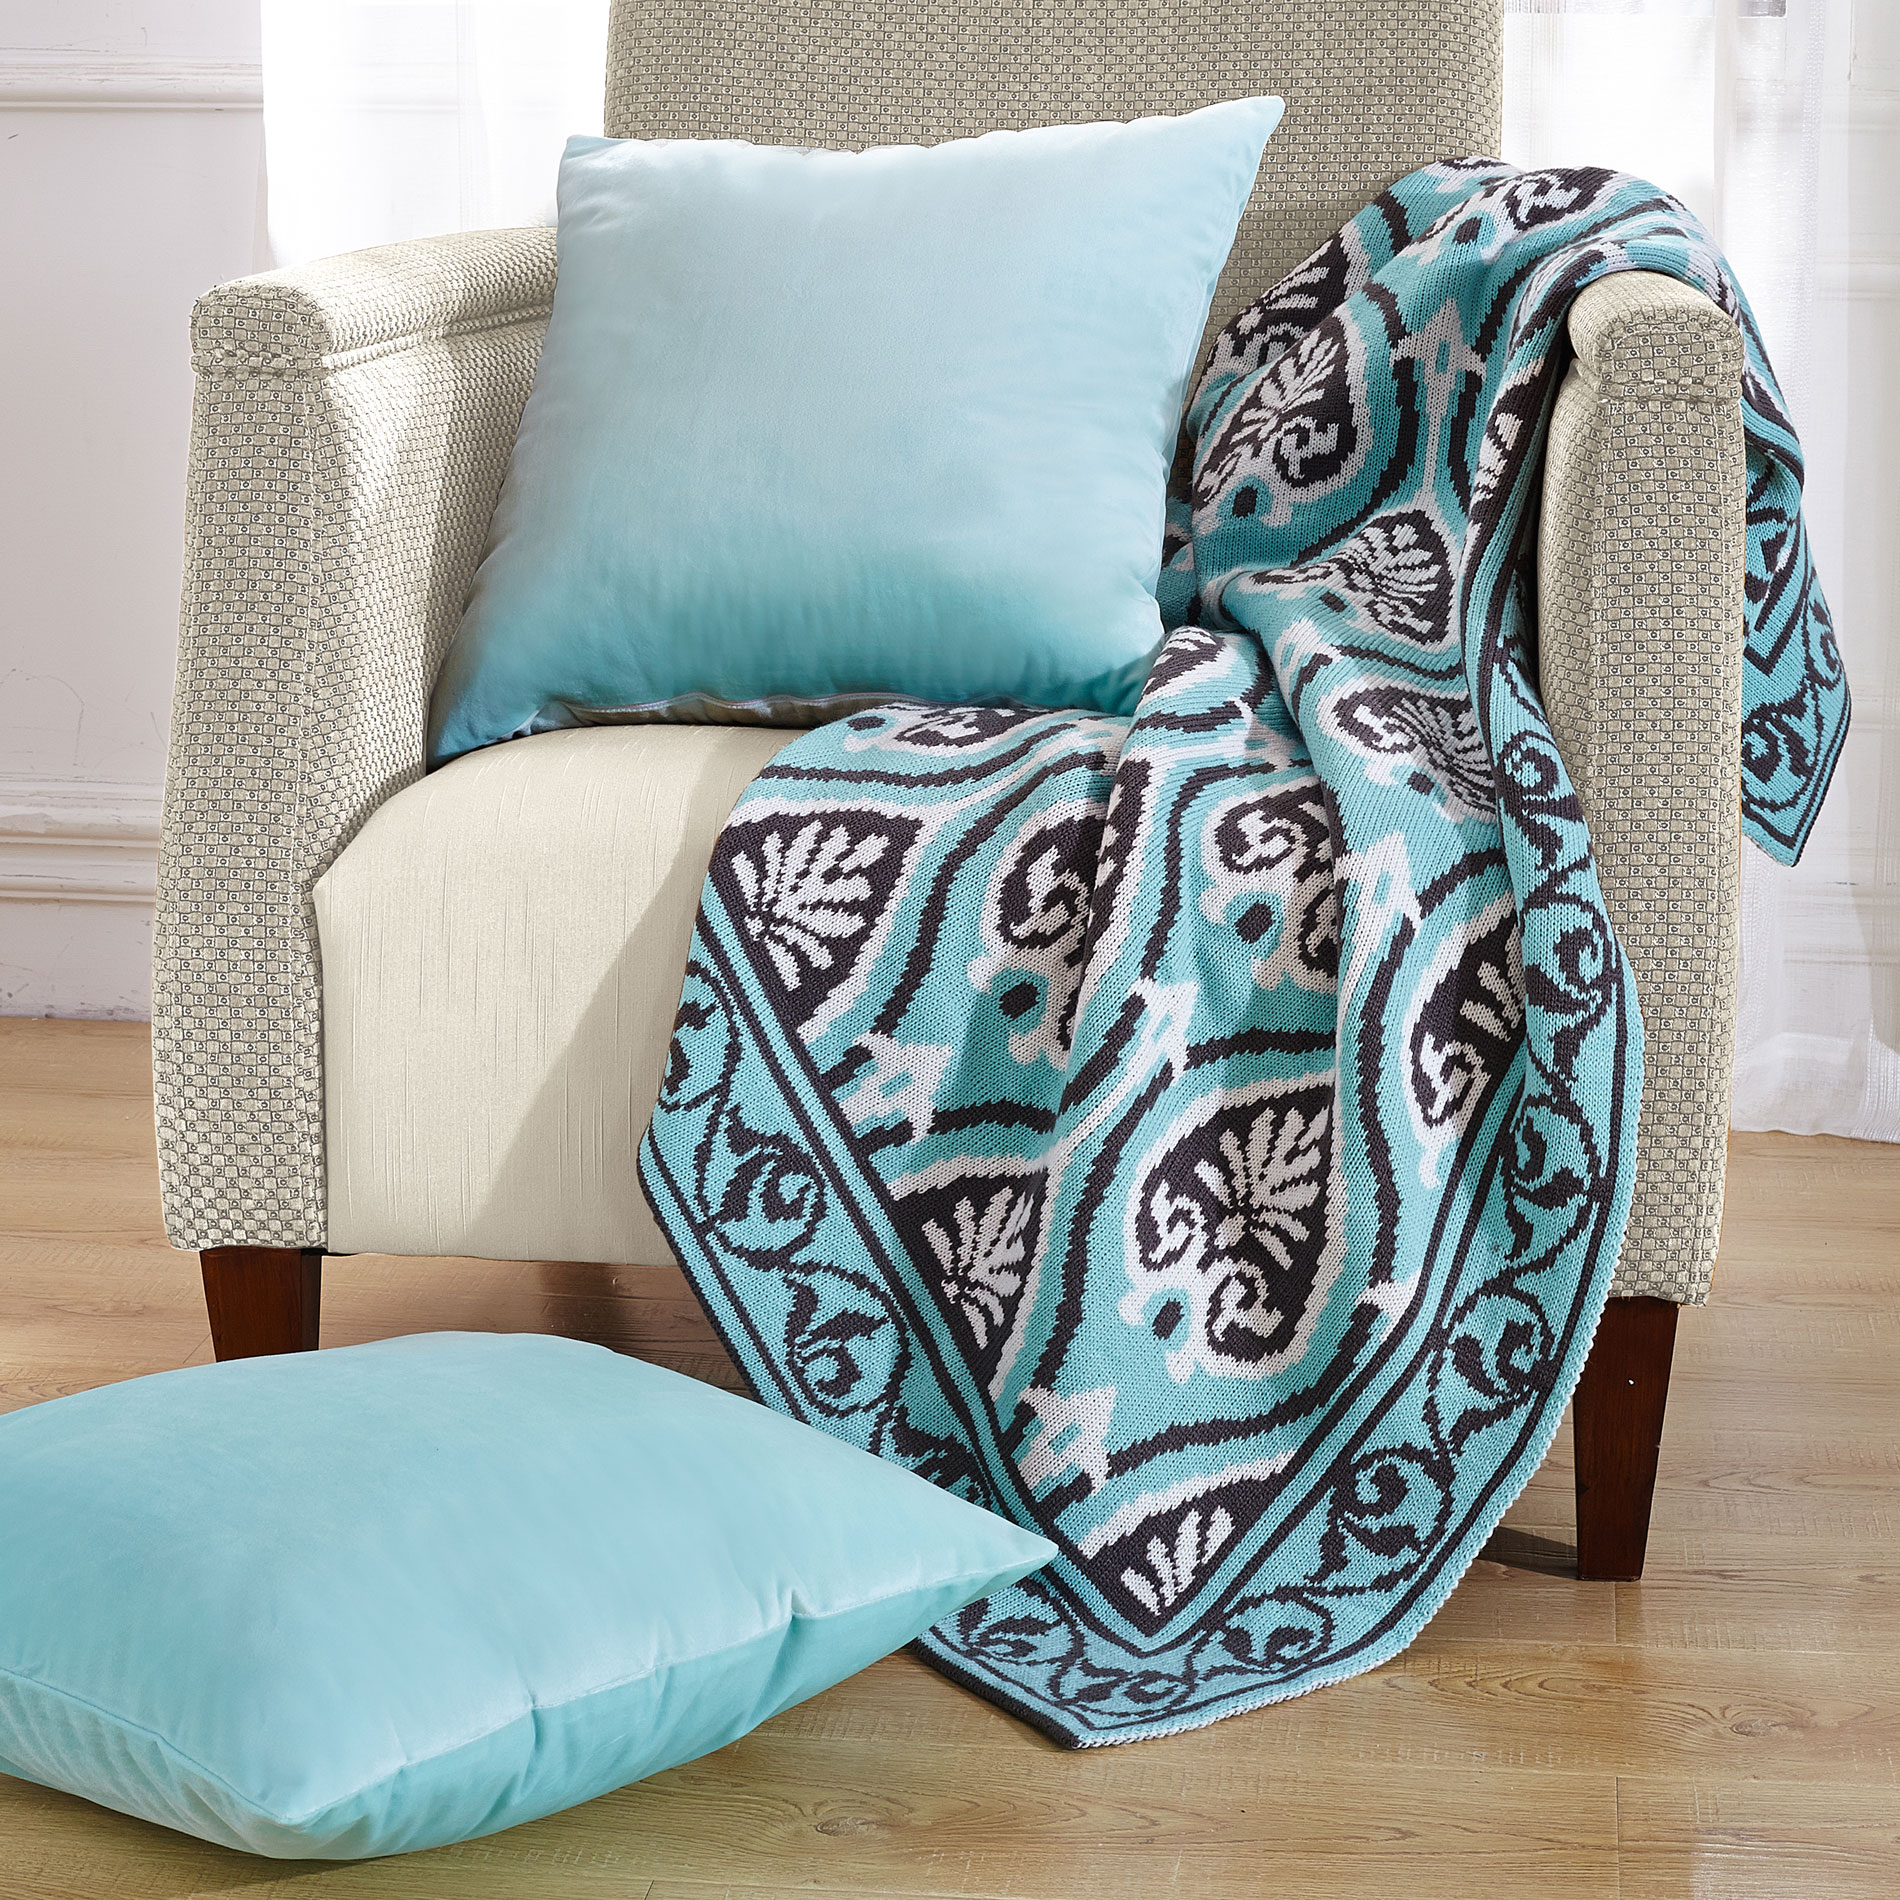 Shop for decorative throw pillow set online at Target. Free shipping on purchases over $35 and save 5% every day with your Target REDcard.